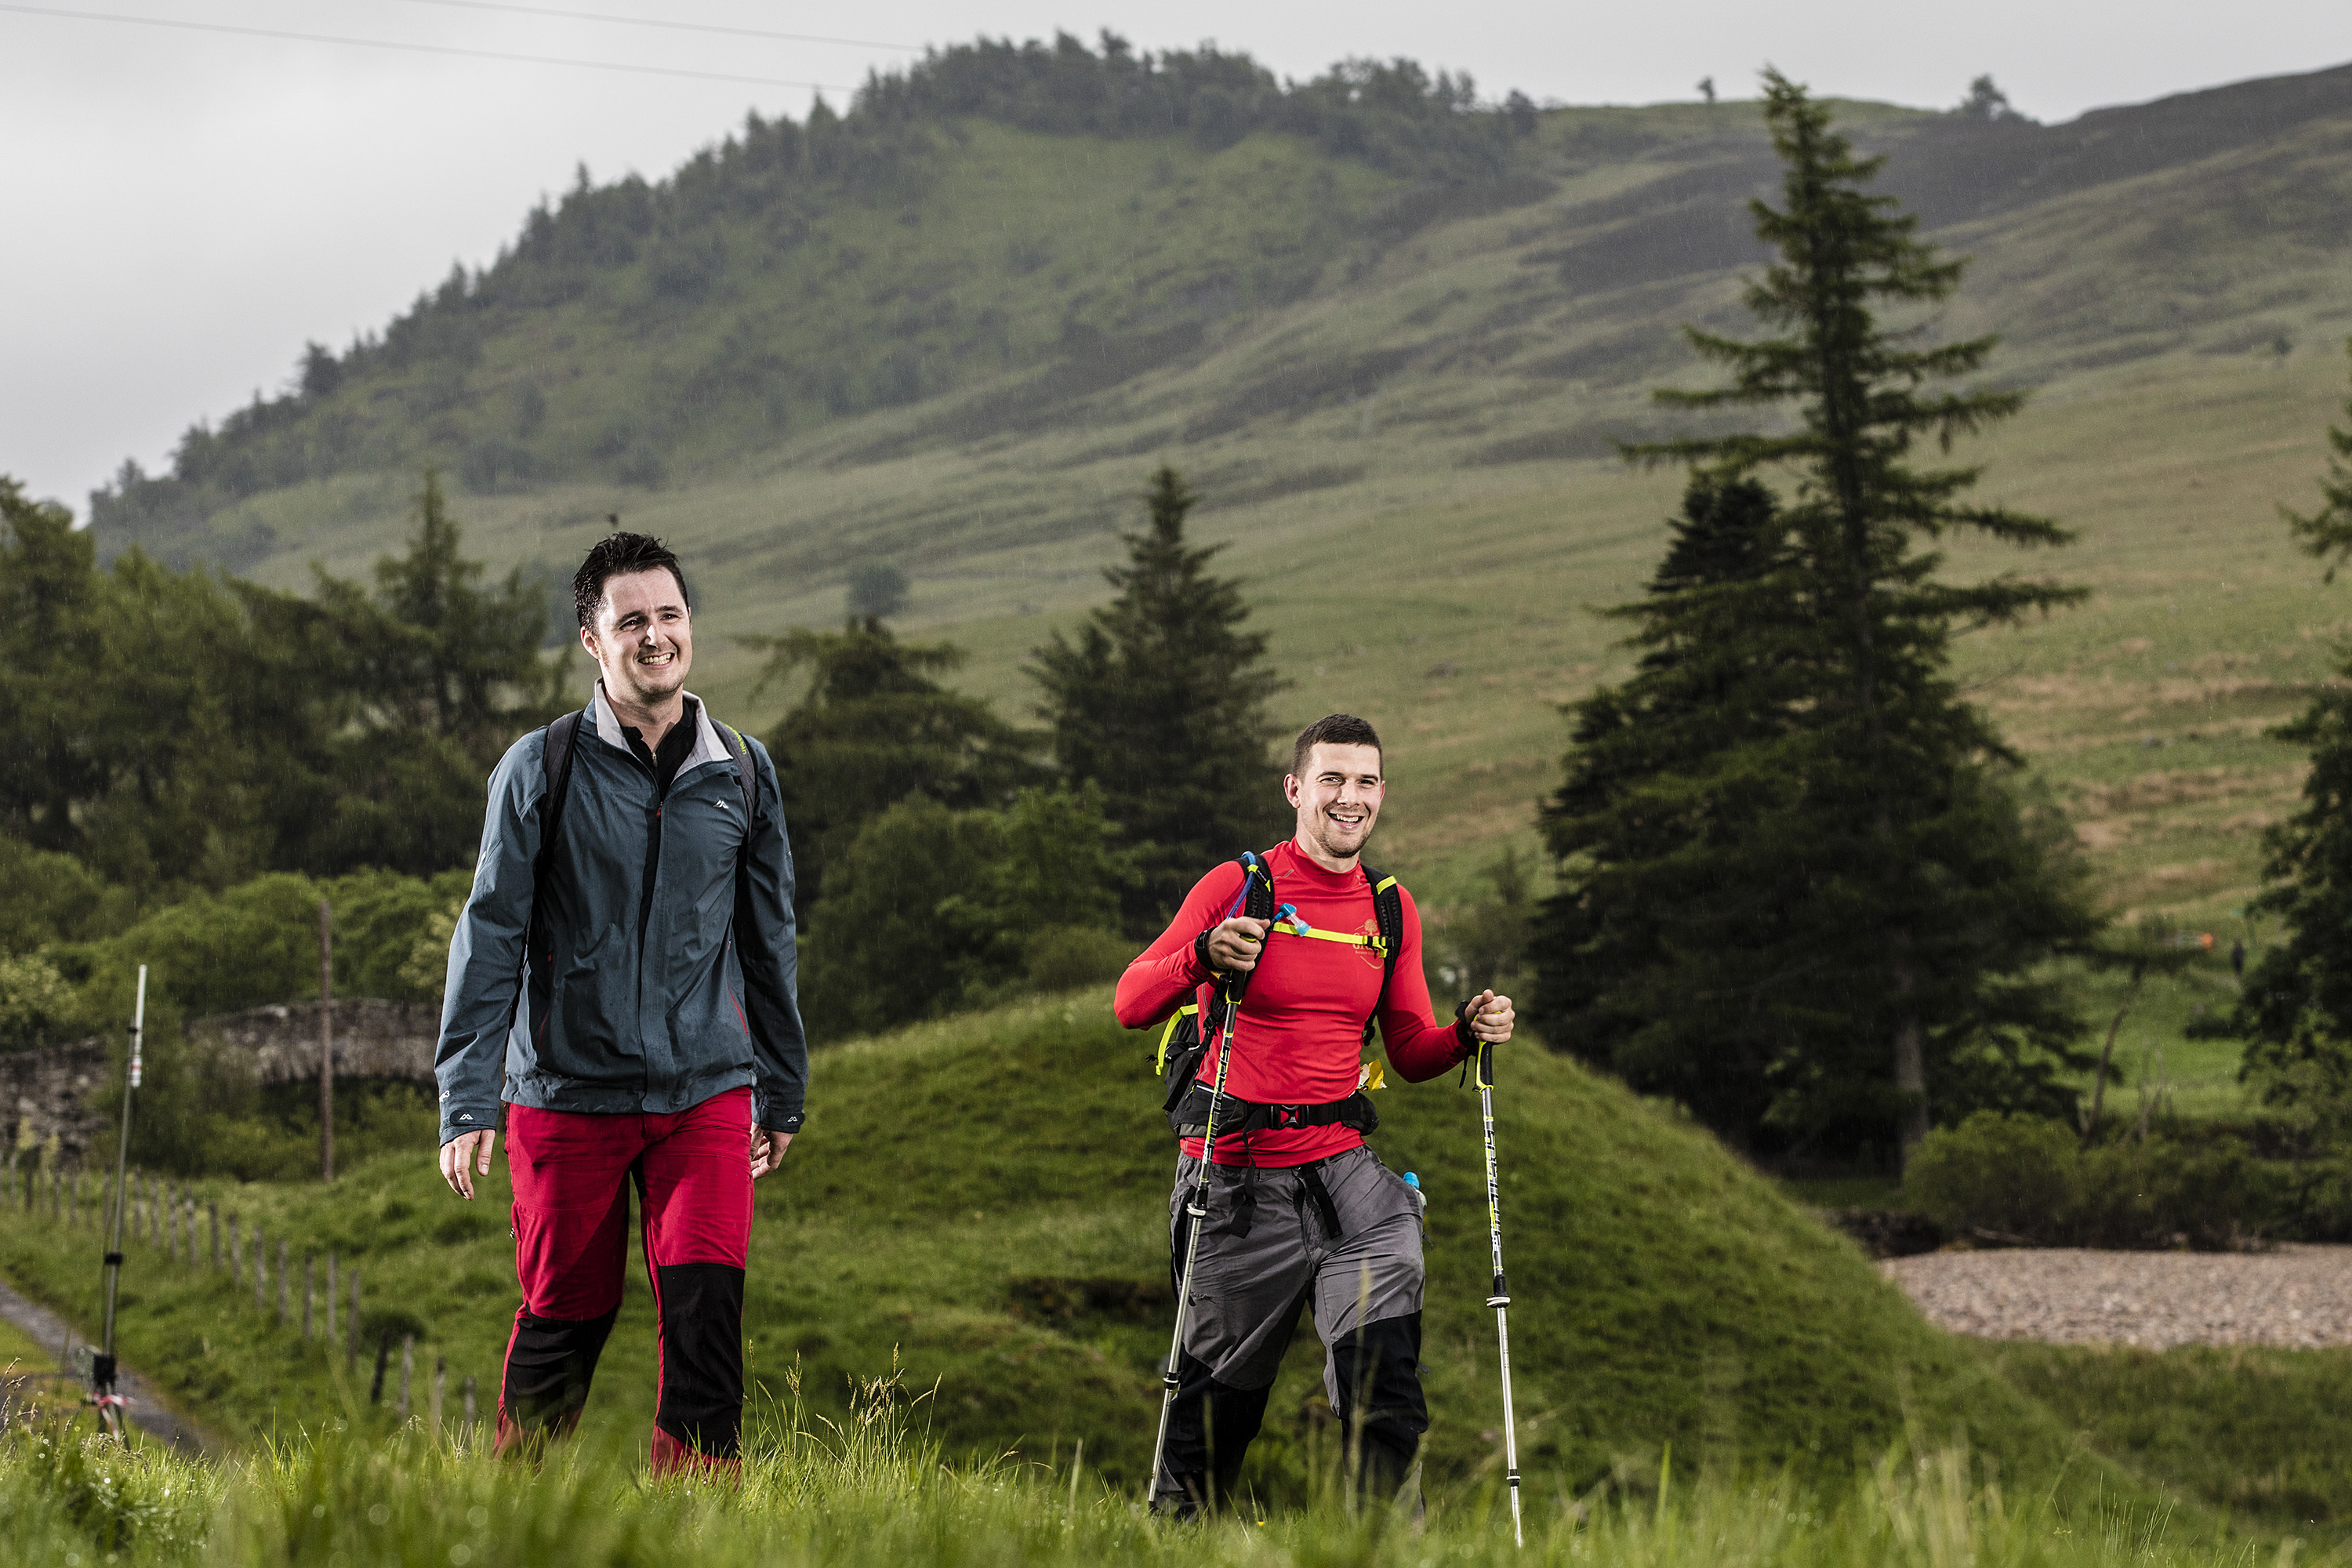 More than 8,000 people now take to the Cateran Trail each year, hundreds of them during the Cateran Yomp charity event.